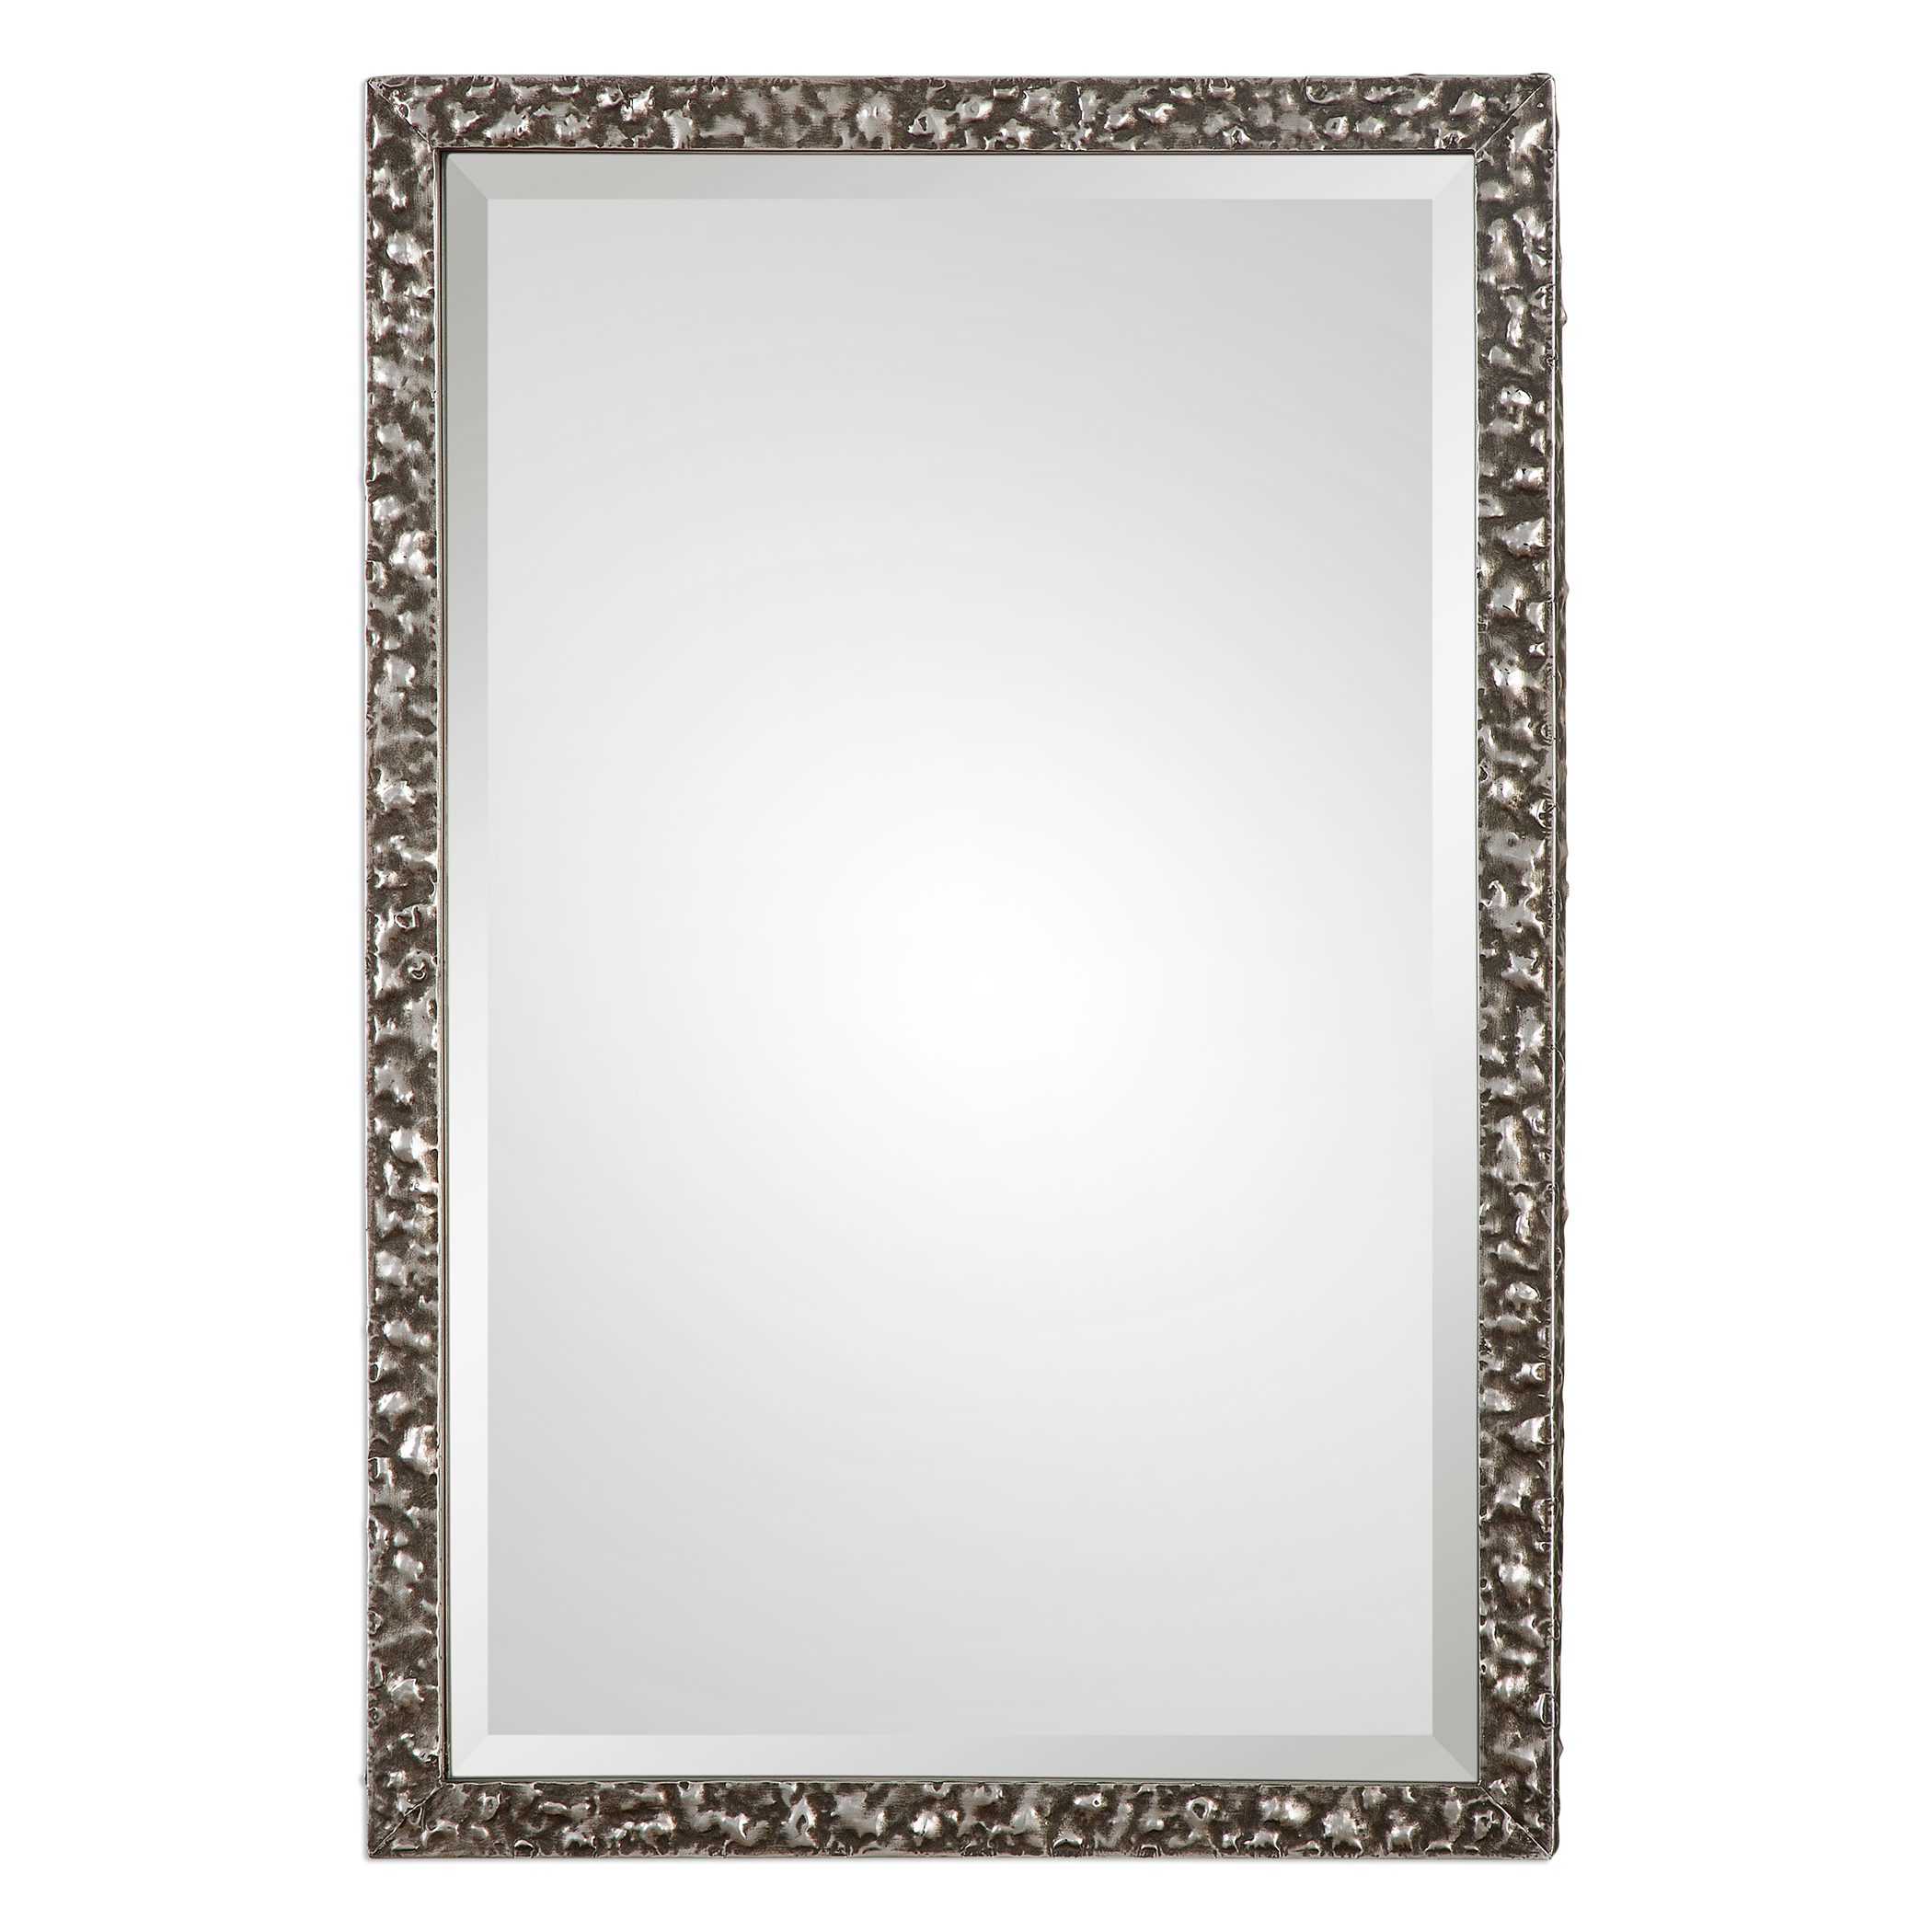 Uttermost Mirrors Alshon Metallic Silver Mirror - Item Number: 09067